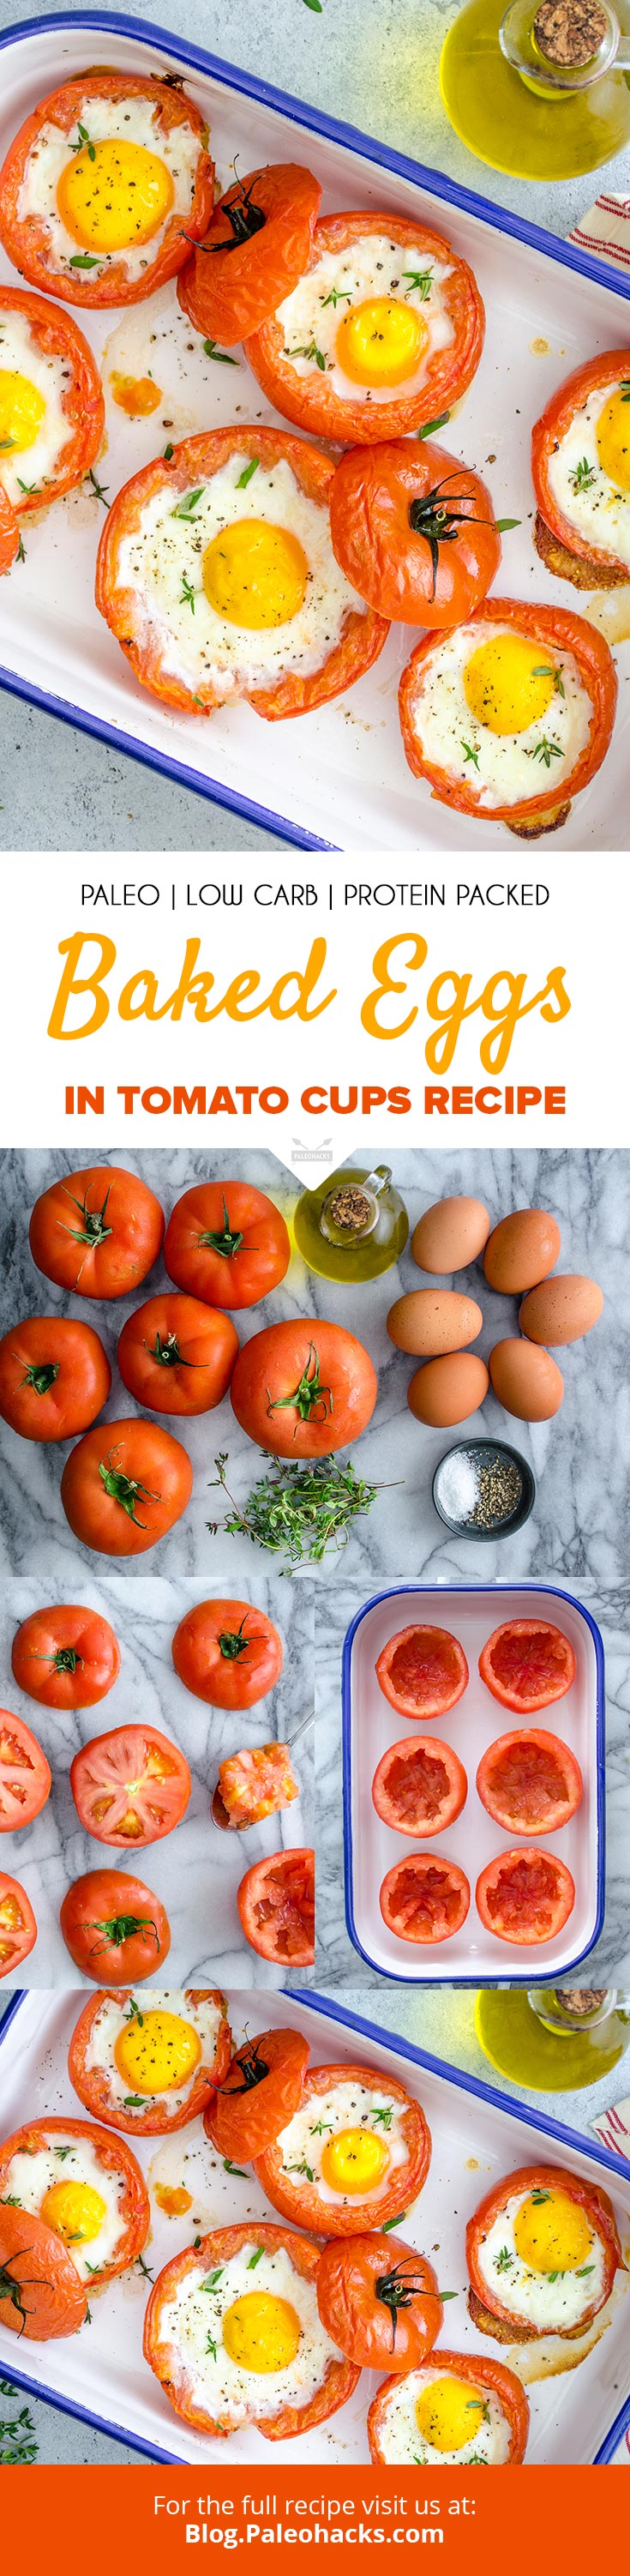 PIN-Baked-Eggs-in-Tomato-Cups-Recipe.jpg